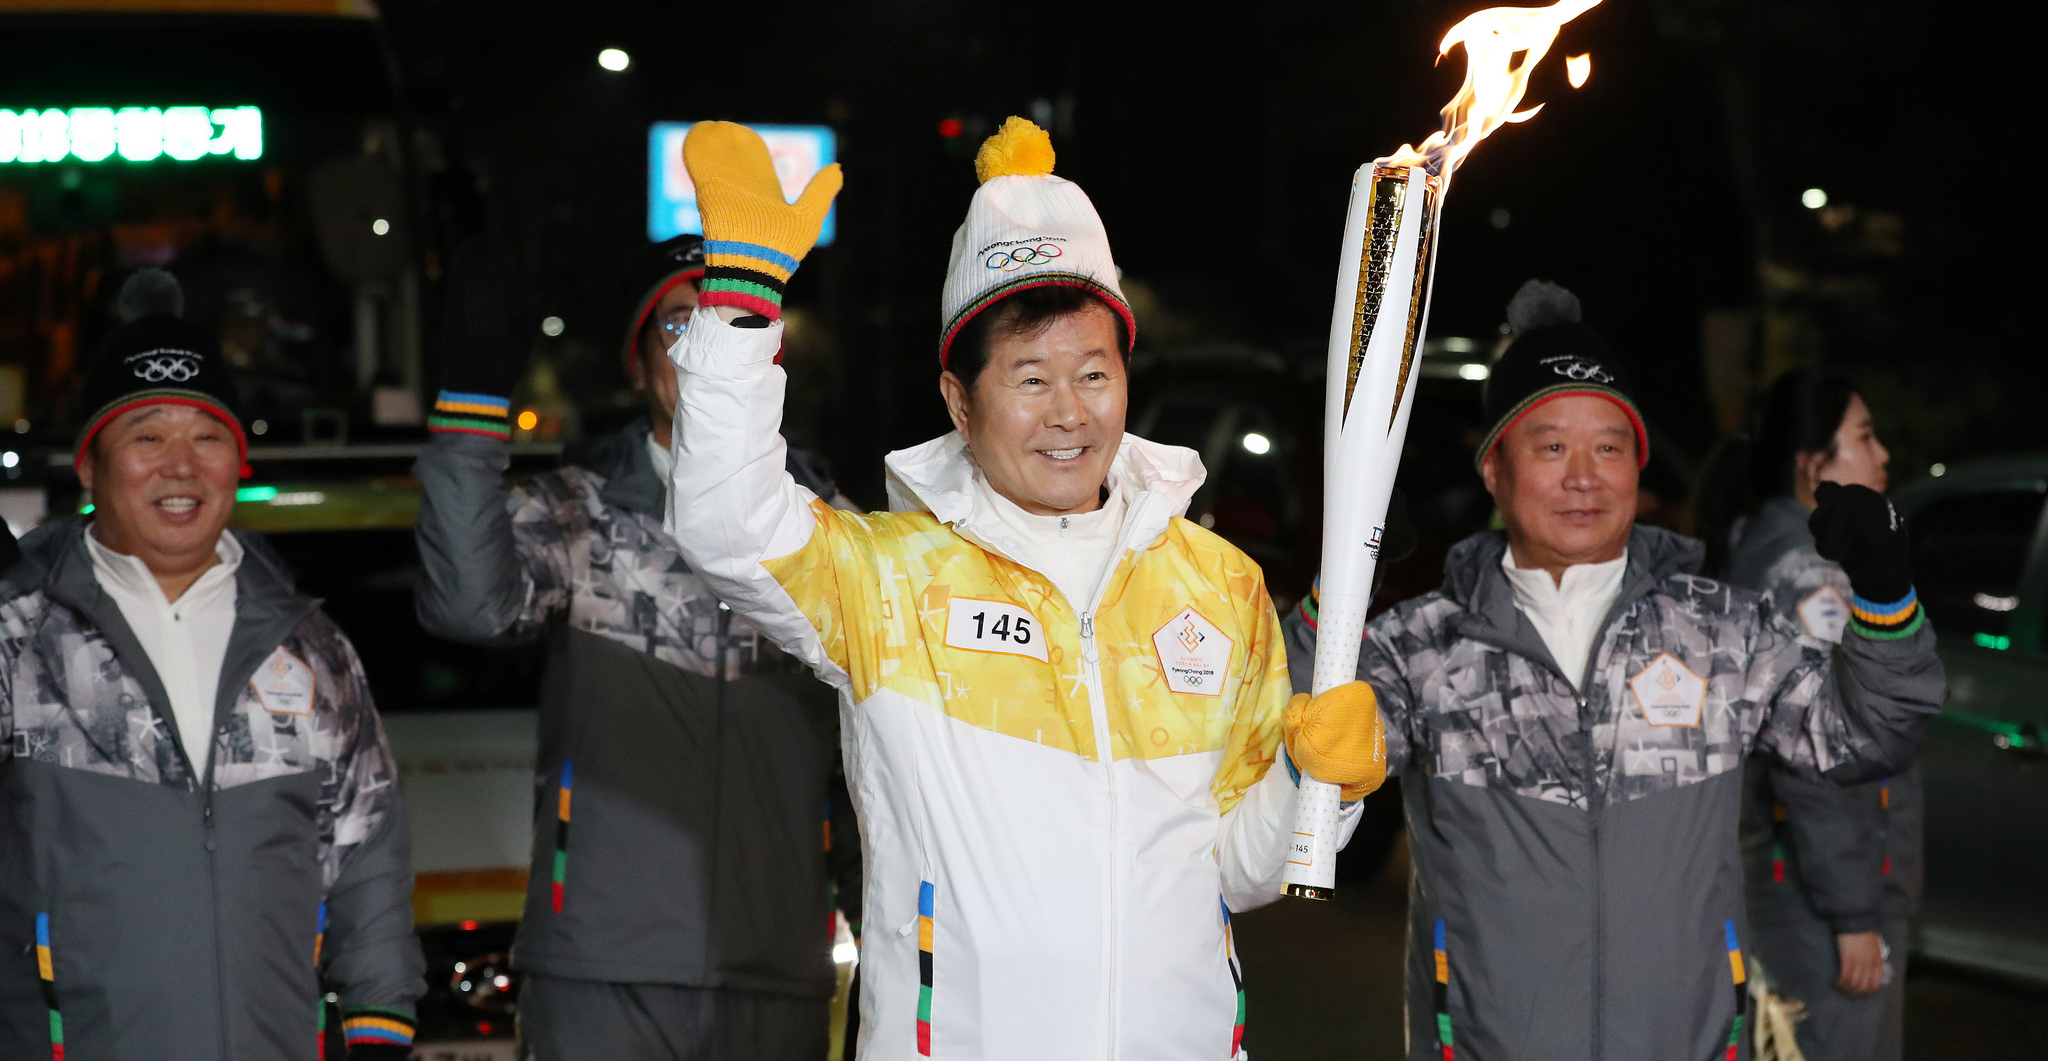 The torch relay in Seoul ahead of the PyeongChang Winter Olympic Games next month (Photo: Republic of Korea/Flickr)